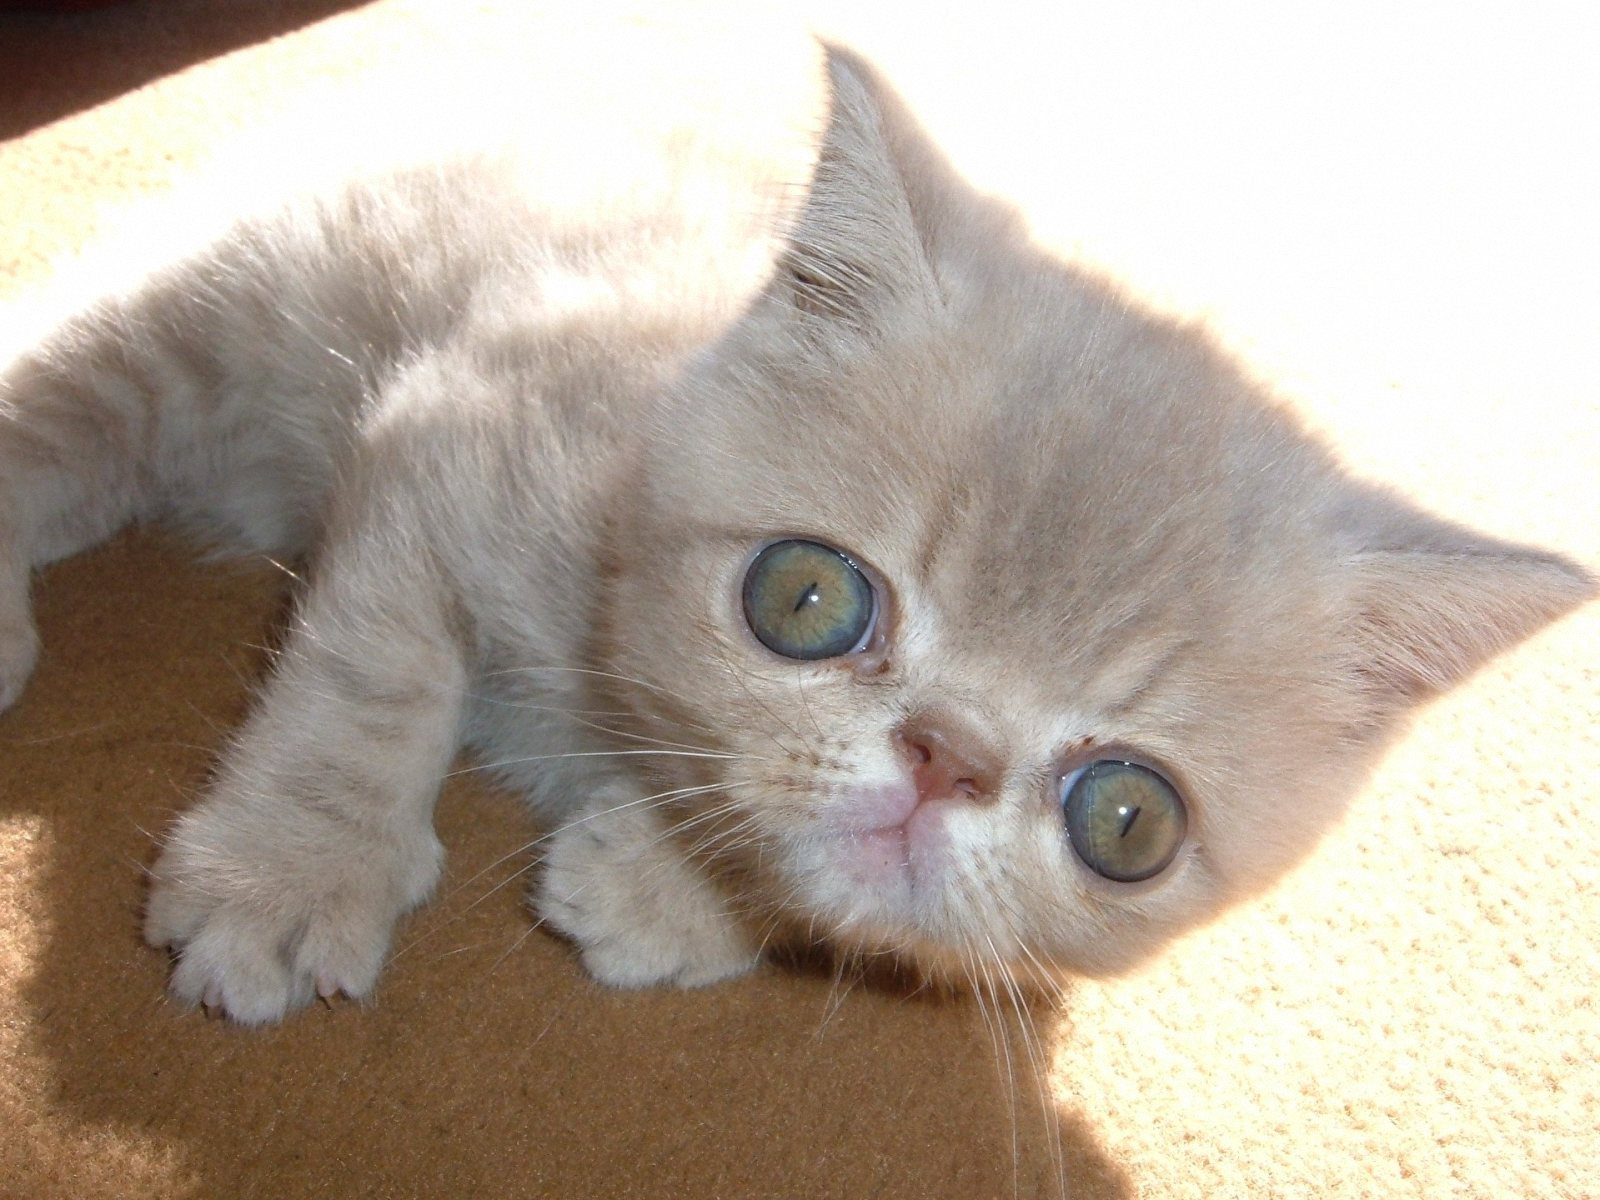 Exotic Shorthair Cat - Puppy Dog Gallery